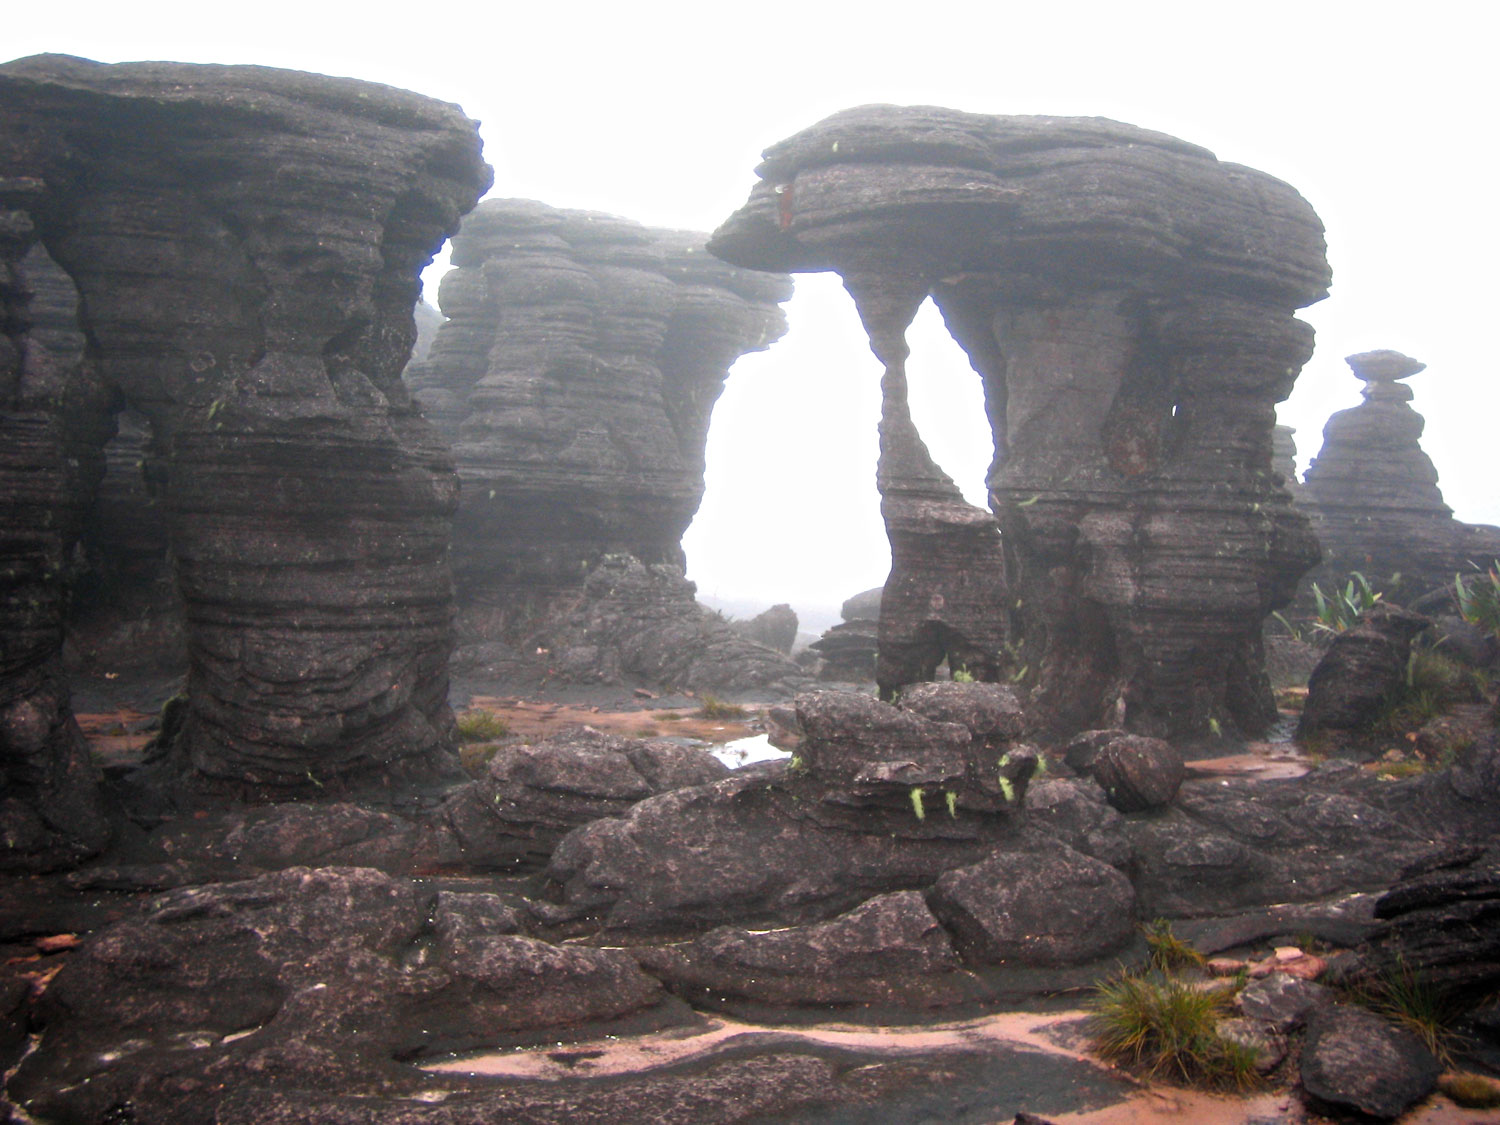 This group of wind-carved rocks is called 'The Cradle of Jesus'. Photograph by Nicholas Laughlin